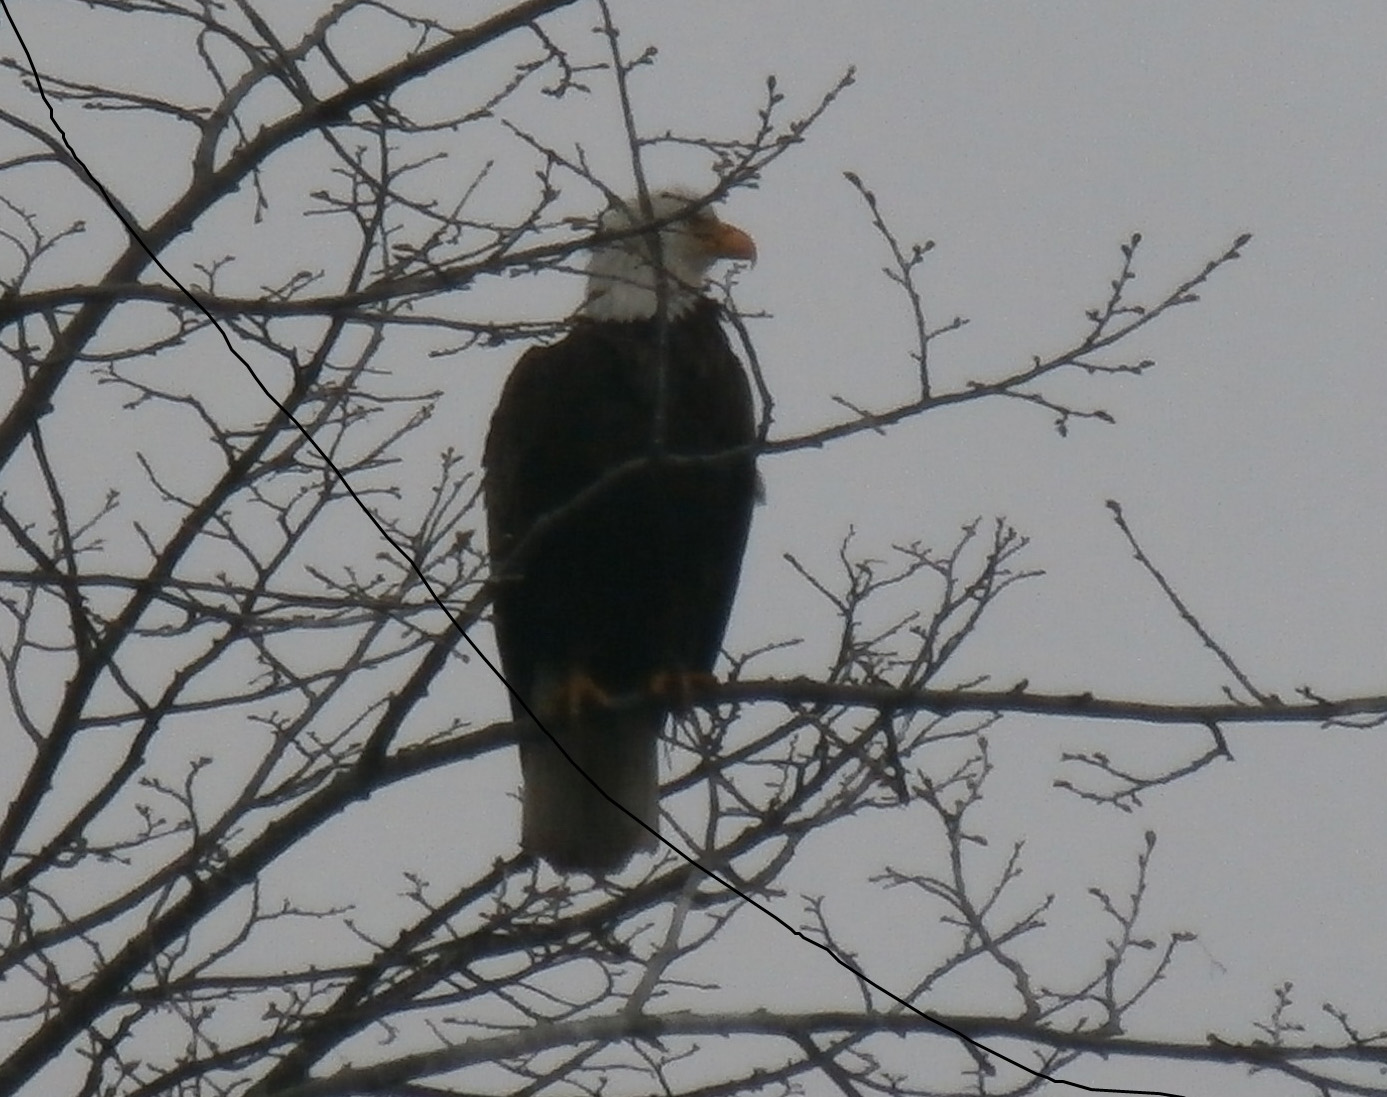 Drue Wallace, AD, spotted this eagle looking out over the pond in front of Wilson Hall. Luckily, a co-worker was nearby to snap the photo. Photo: Jamie Clemons, AD